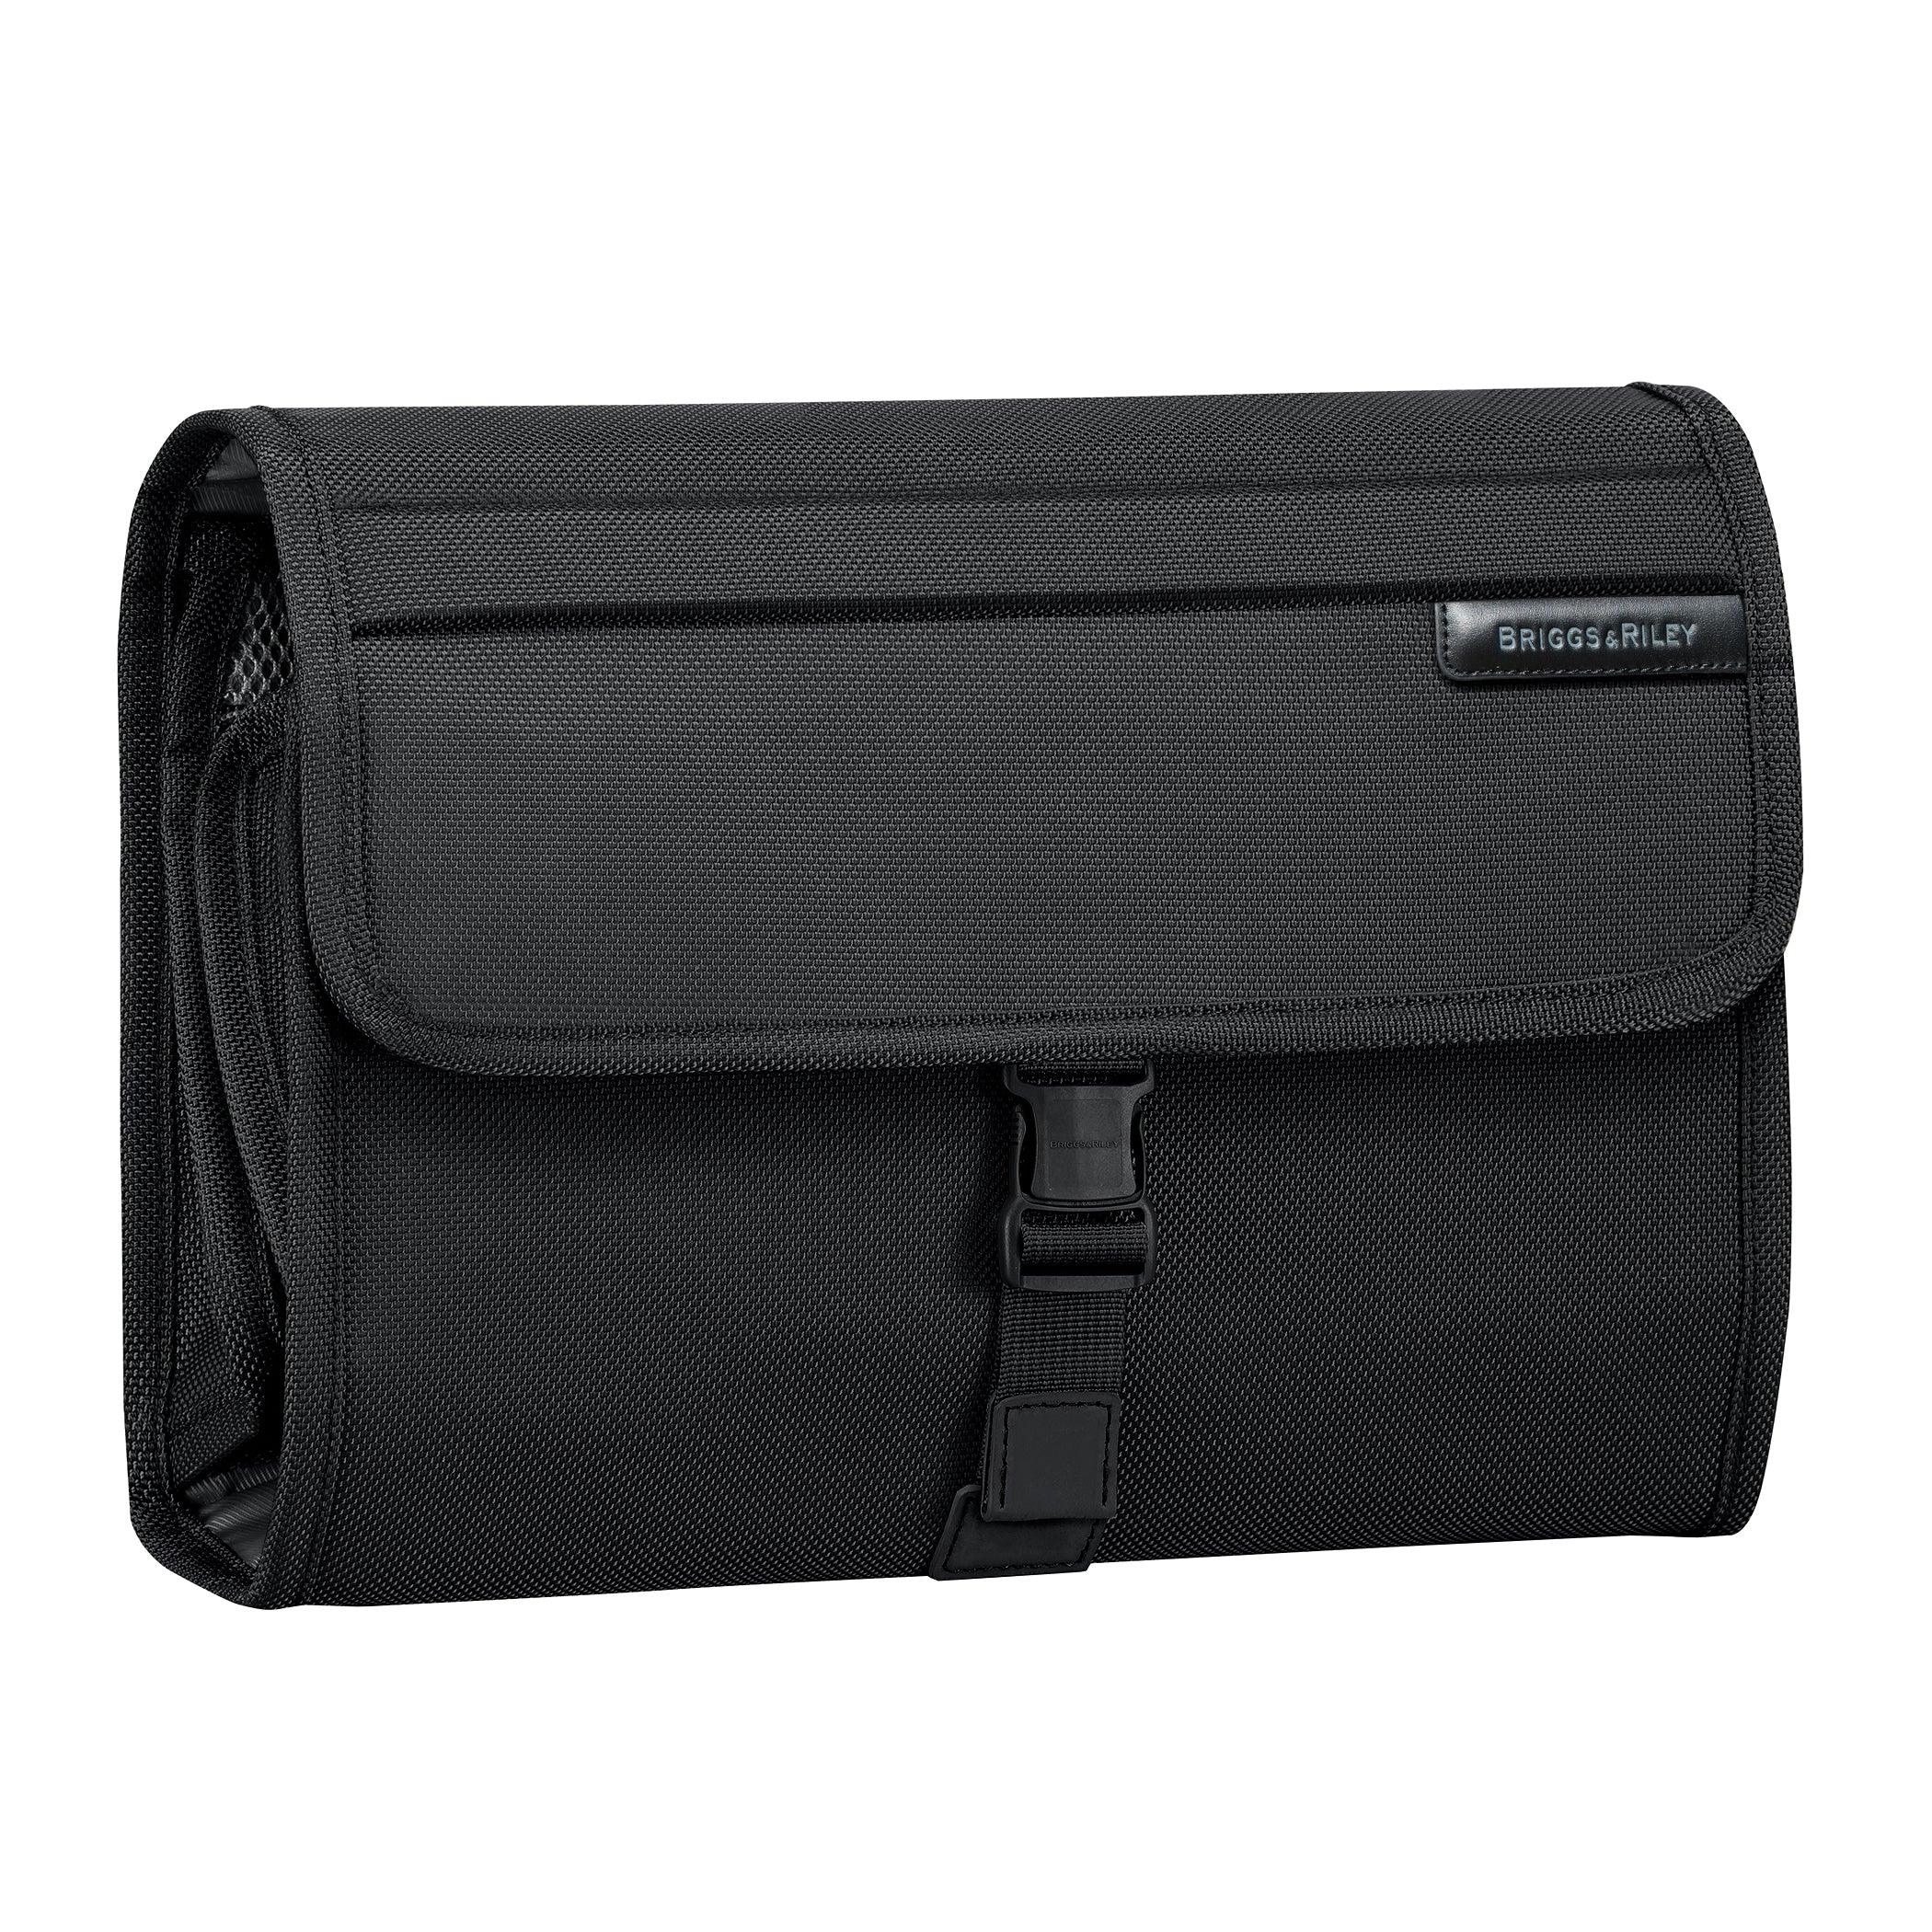 Briggs & Riley baseline Deluxe Toiletry Kit - Black | MEGO